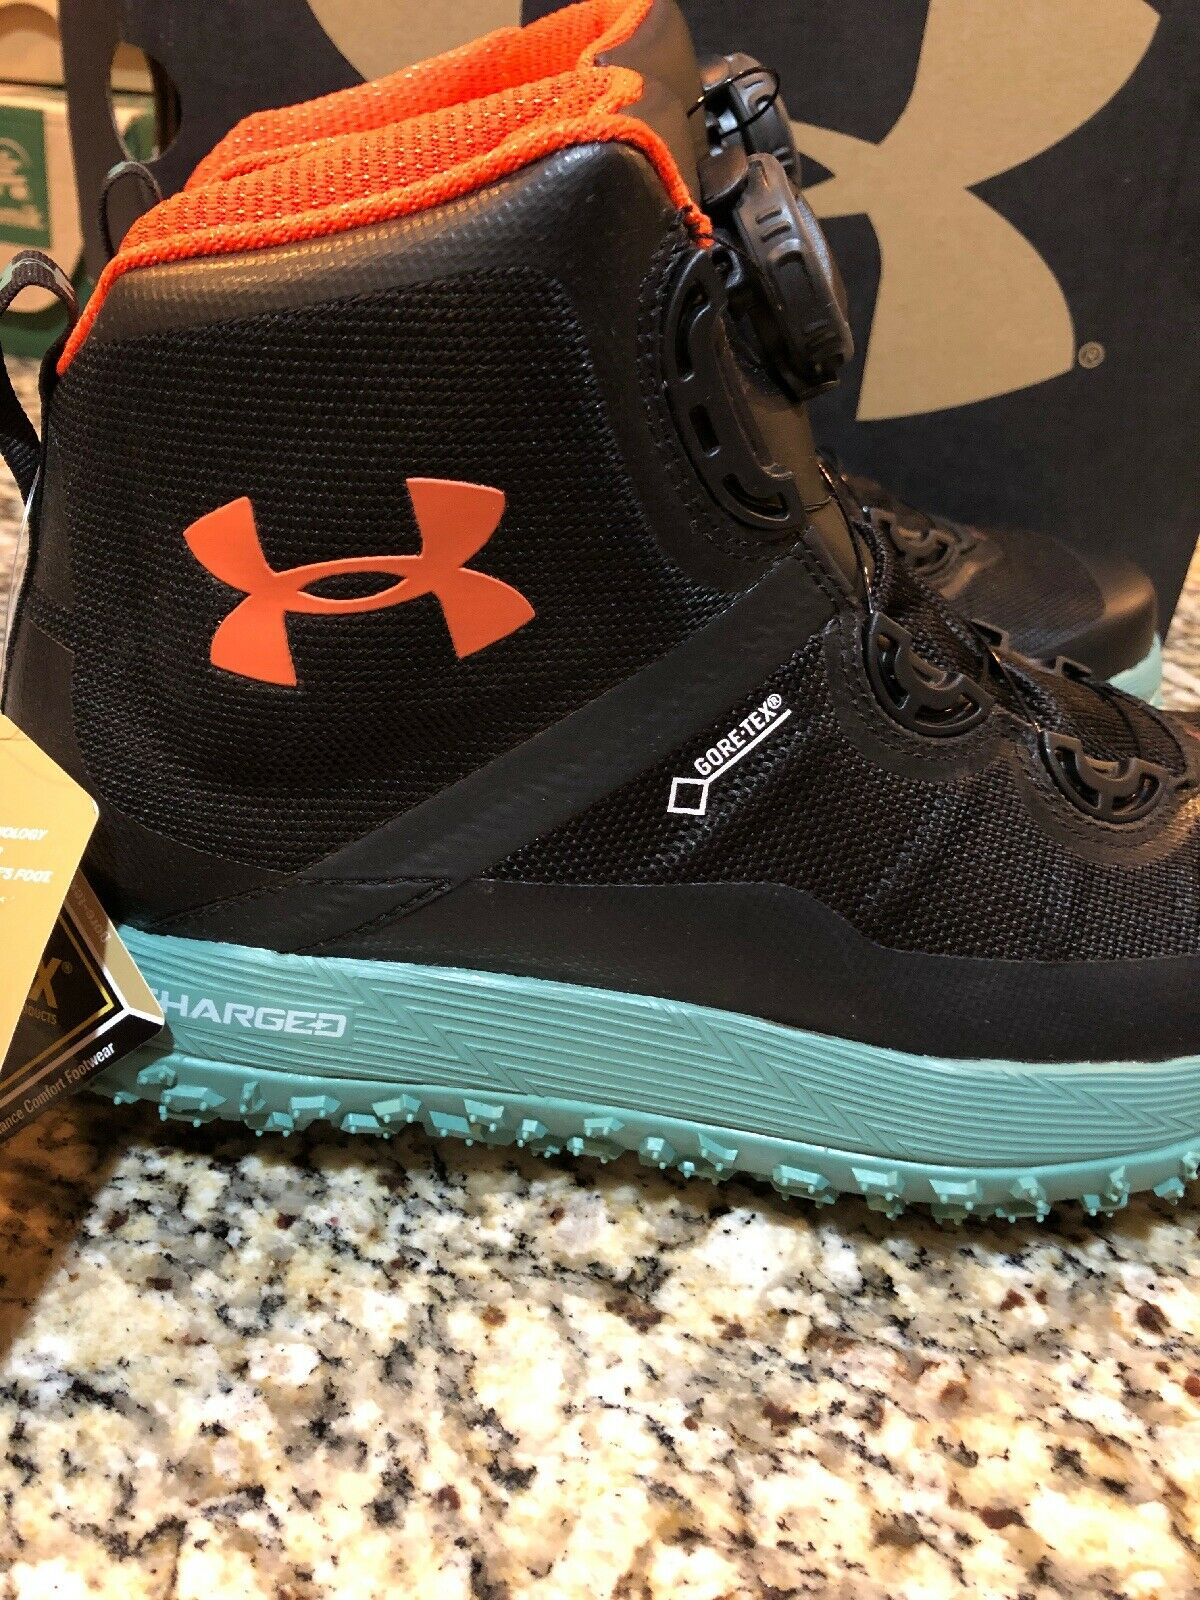 new under armour